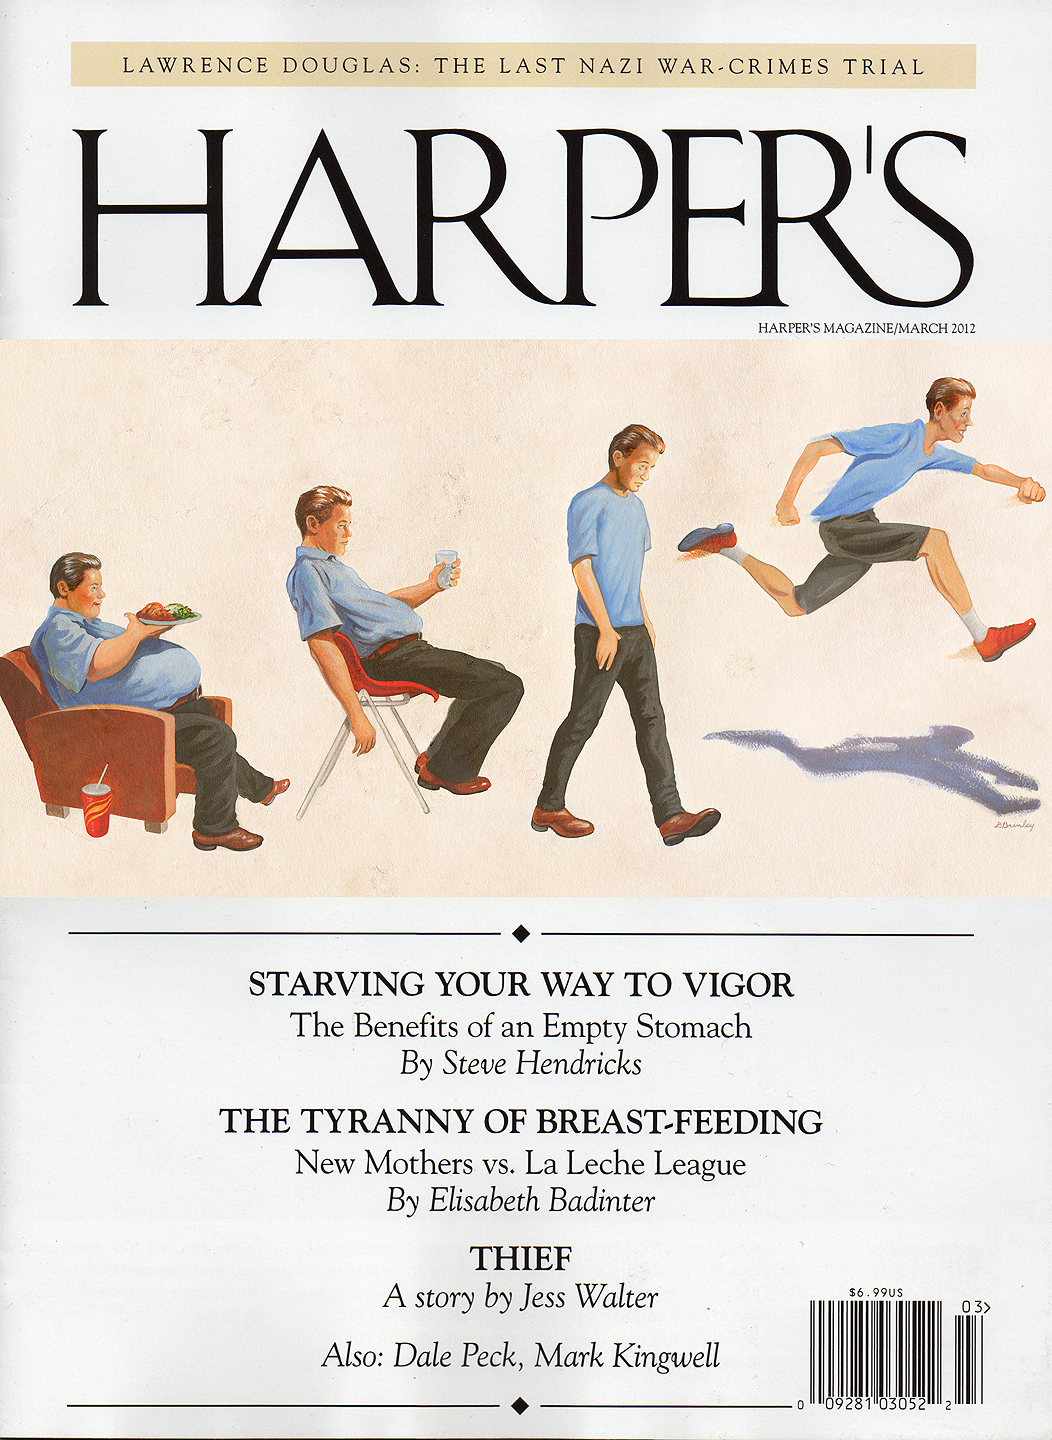 Starving Your Way To Vigor  | Harper's magazine cover